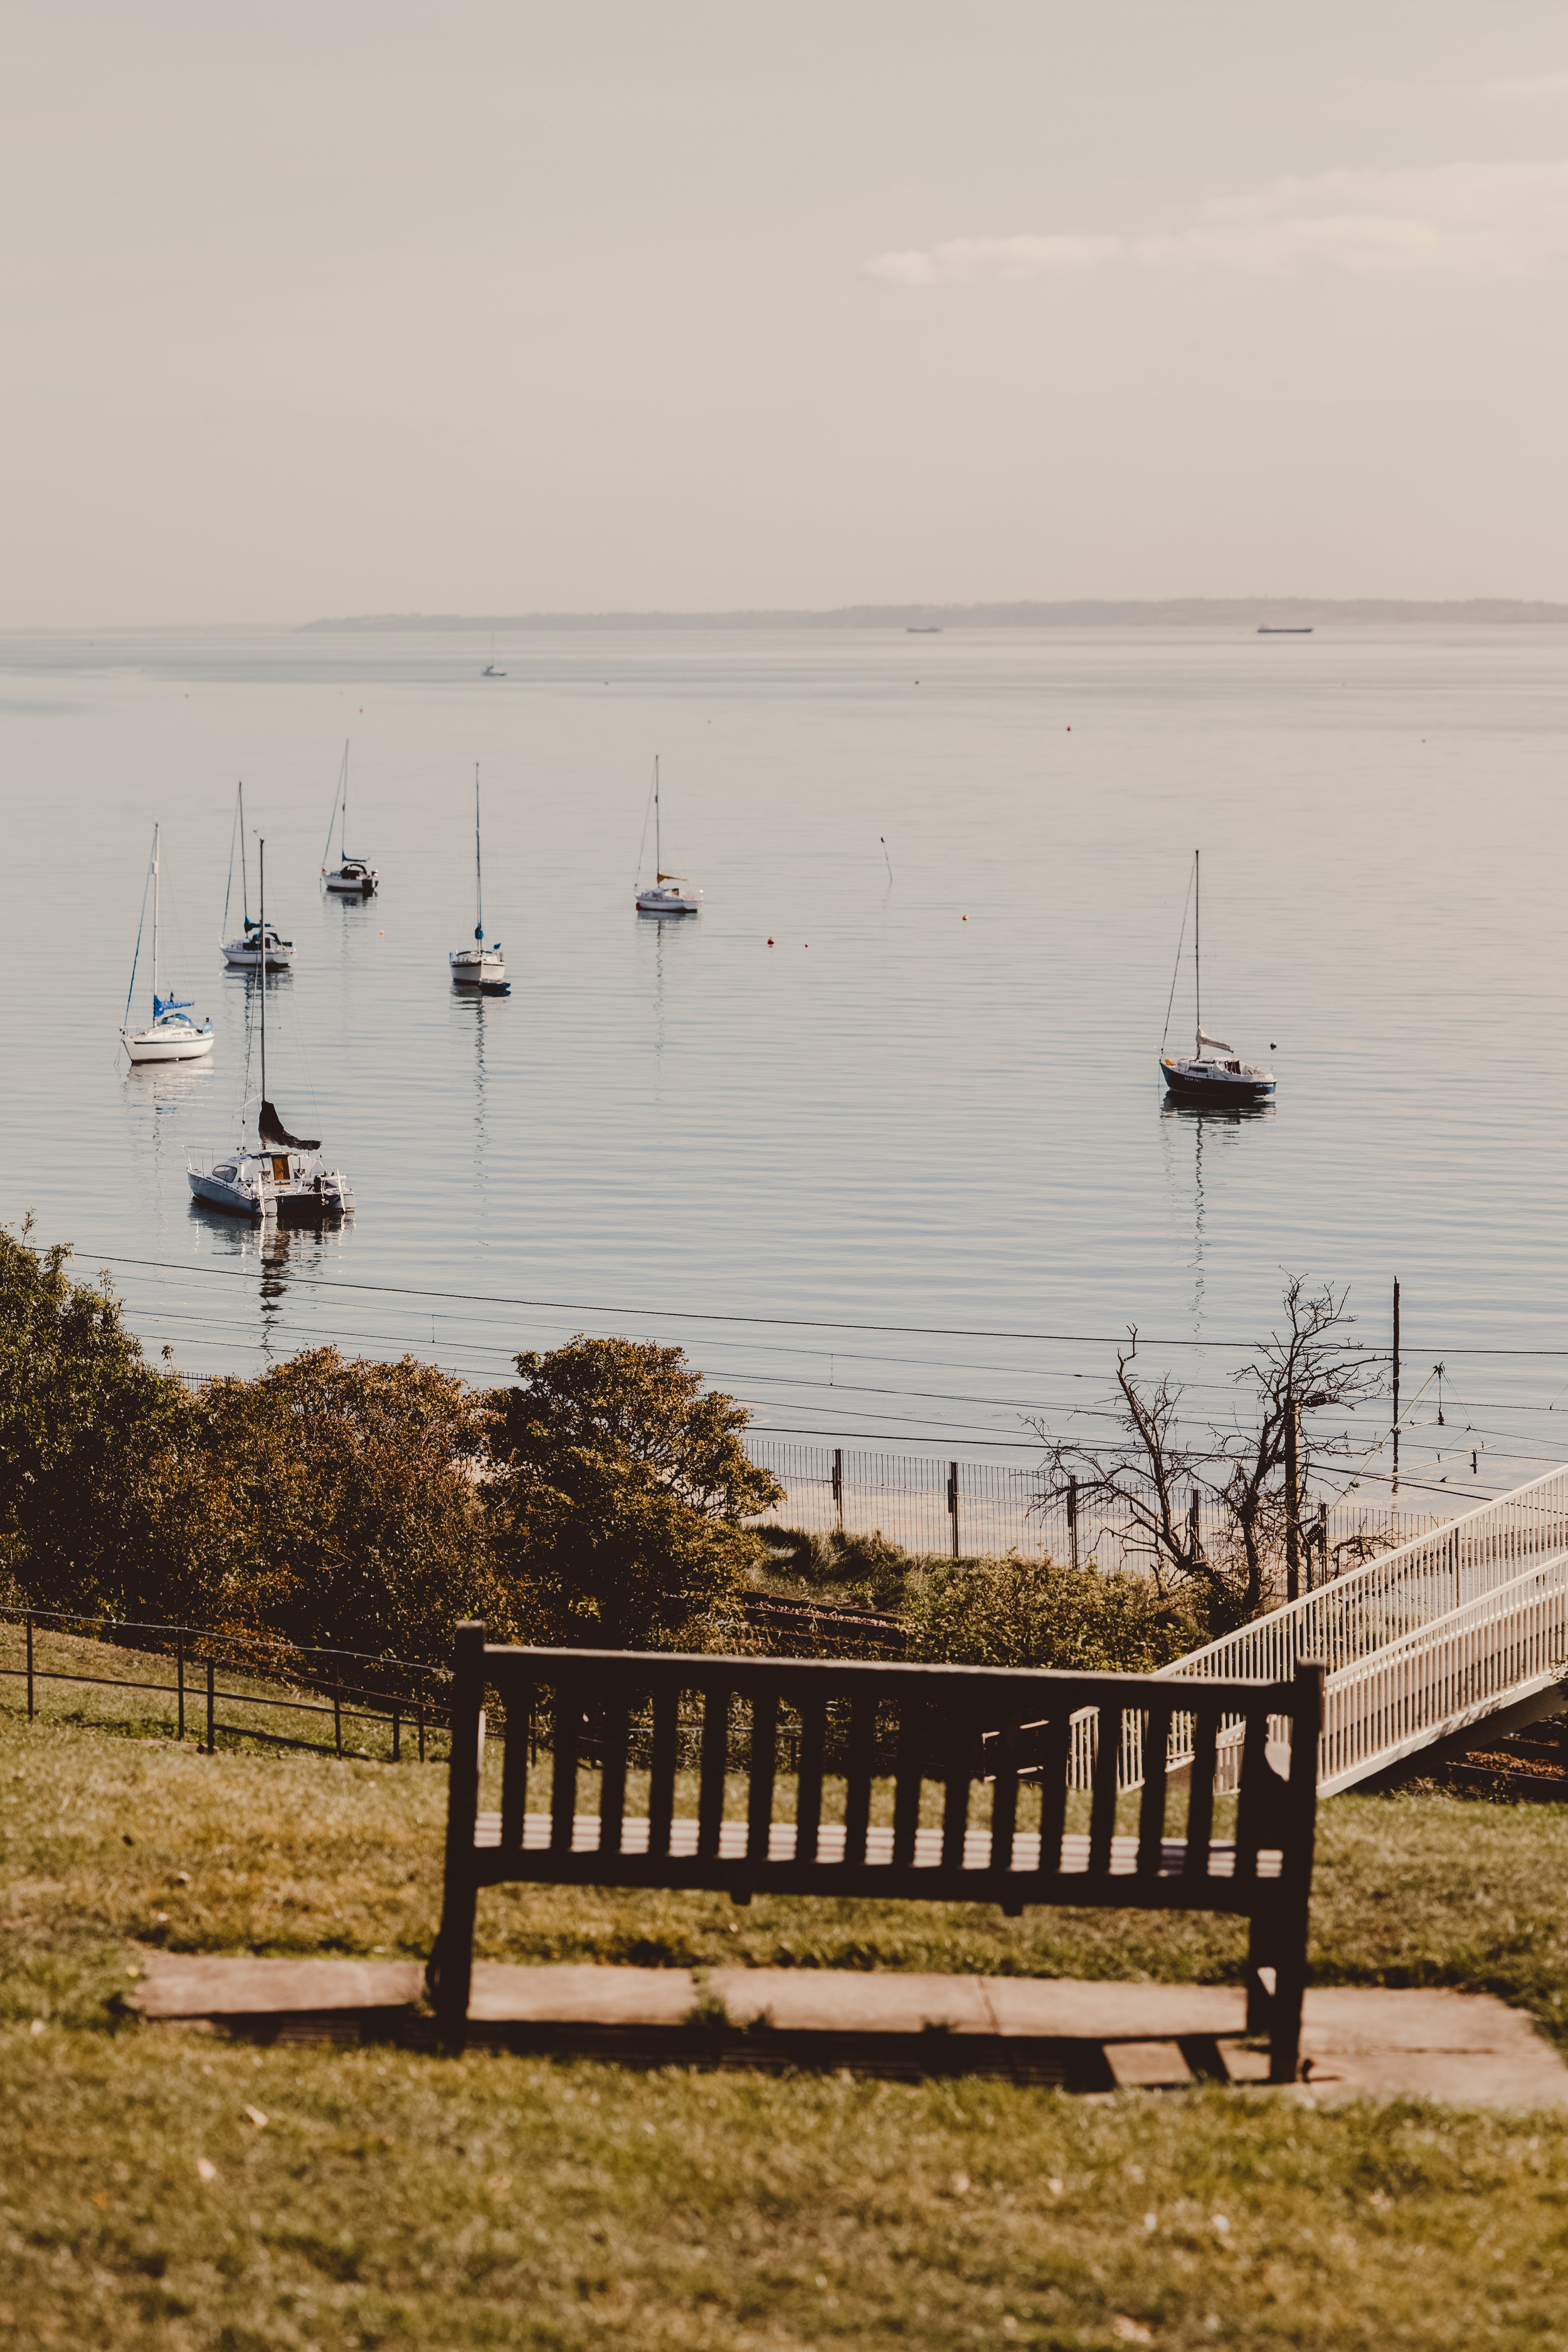 This spot is less than 5 minutes from our Leigh-on-Sea office. Can you imagine yourself recharging in the sun, ready to face the second half of your day of productivity?